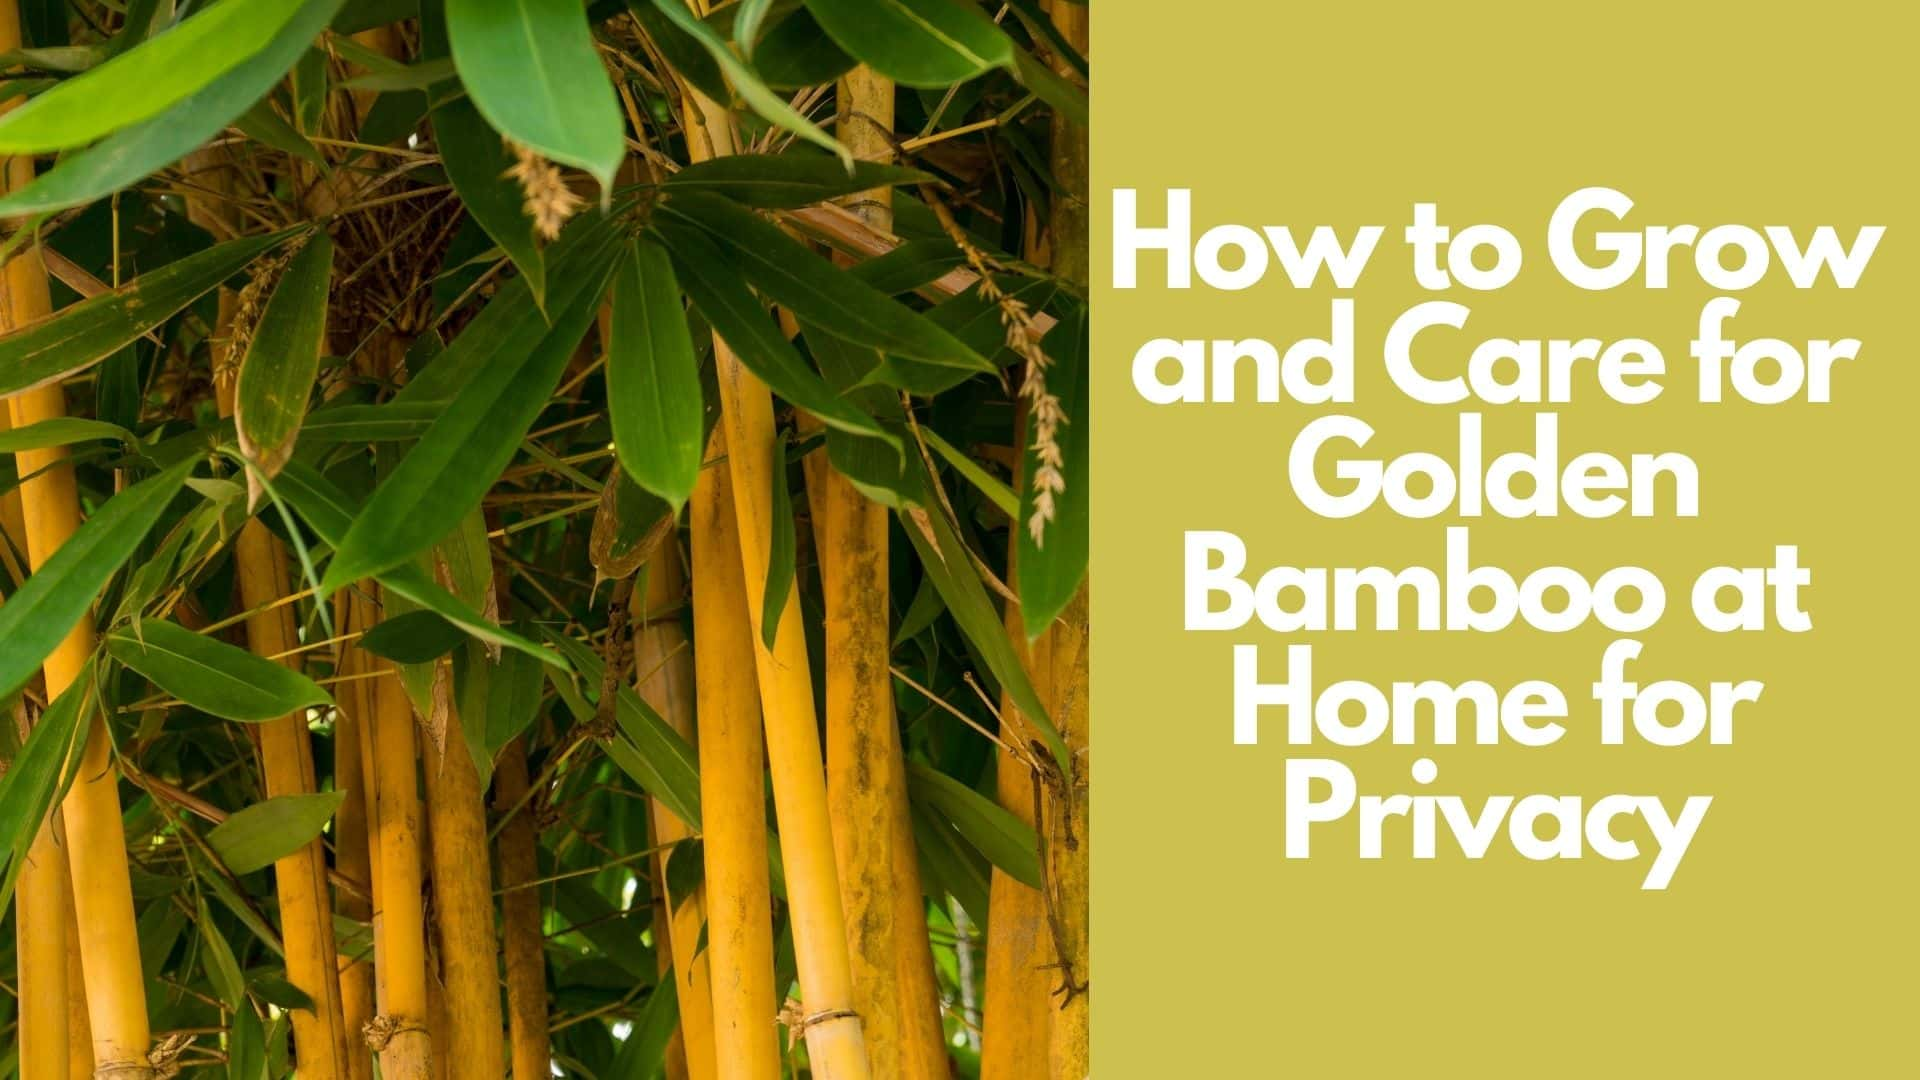 How to Grow and Care for Golden Bamboo at Home for Privacy